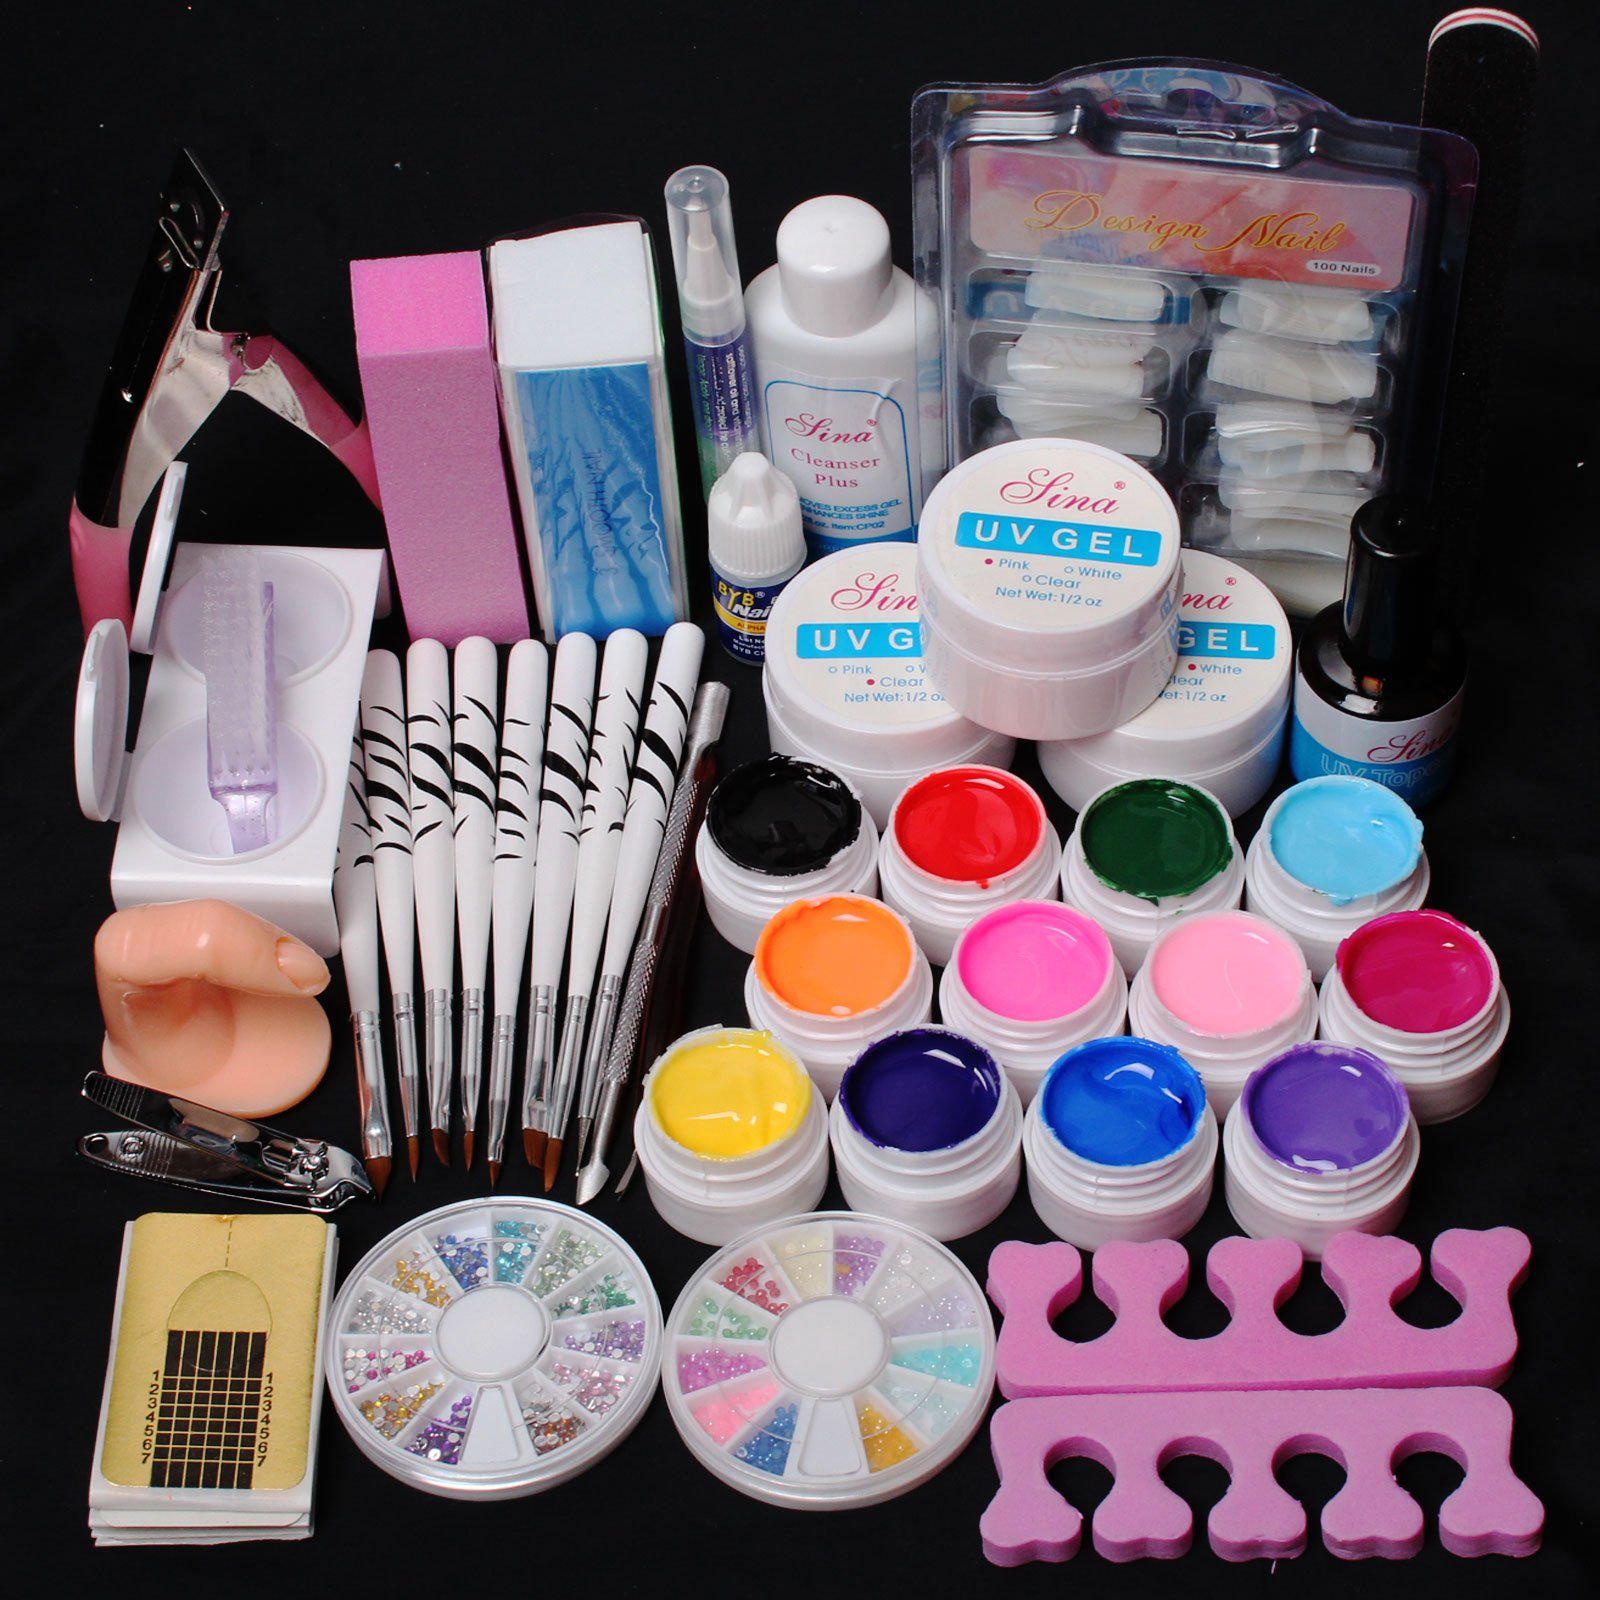 US Seller ~ 24 in 1 Combo Set Professional Color UV Builder Gel DIY Nail Art Decorations Kit Brush Buffer Cuticle Revitalizer Oil Pen Tools Natural White Nail Tips Rhinestones Pearls Cutter Sanding Files Forms Glue UV Gel Set #43 (E) by RY by RY